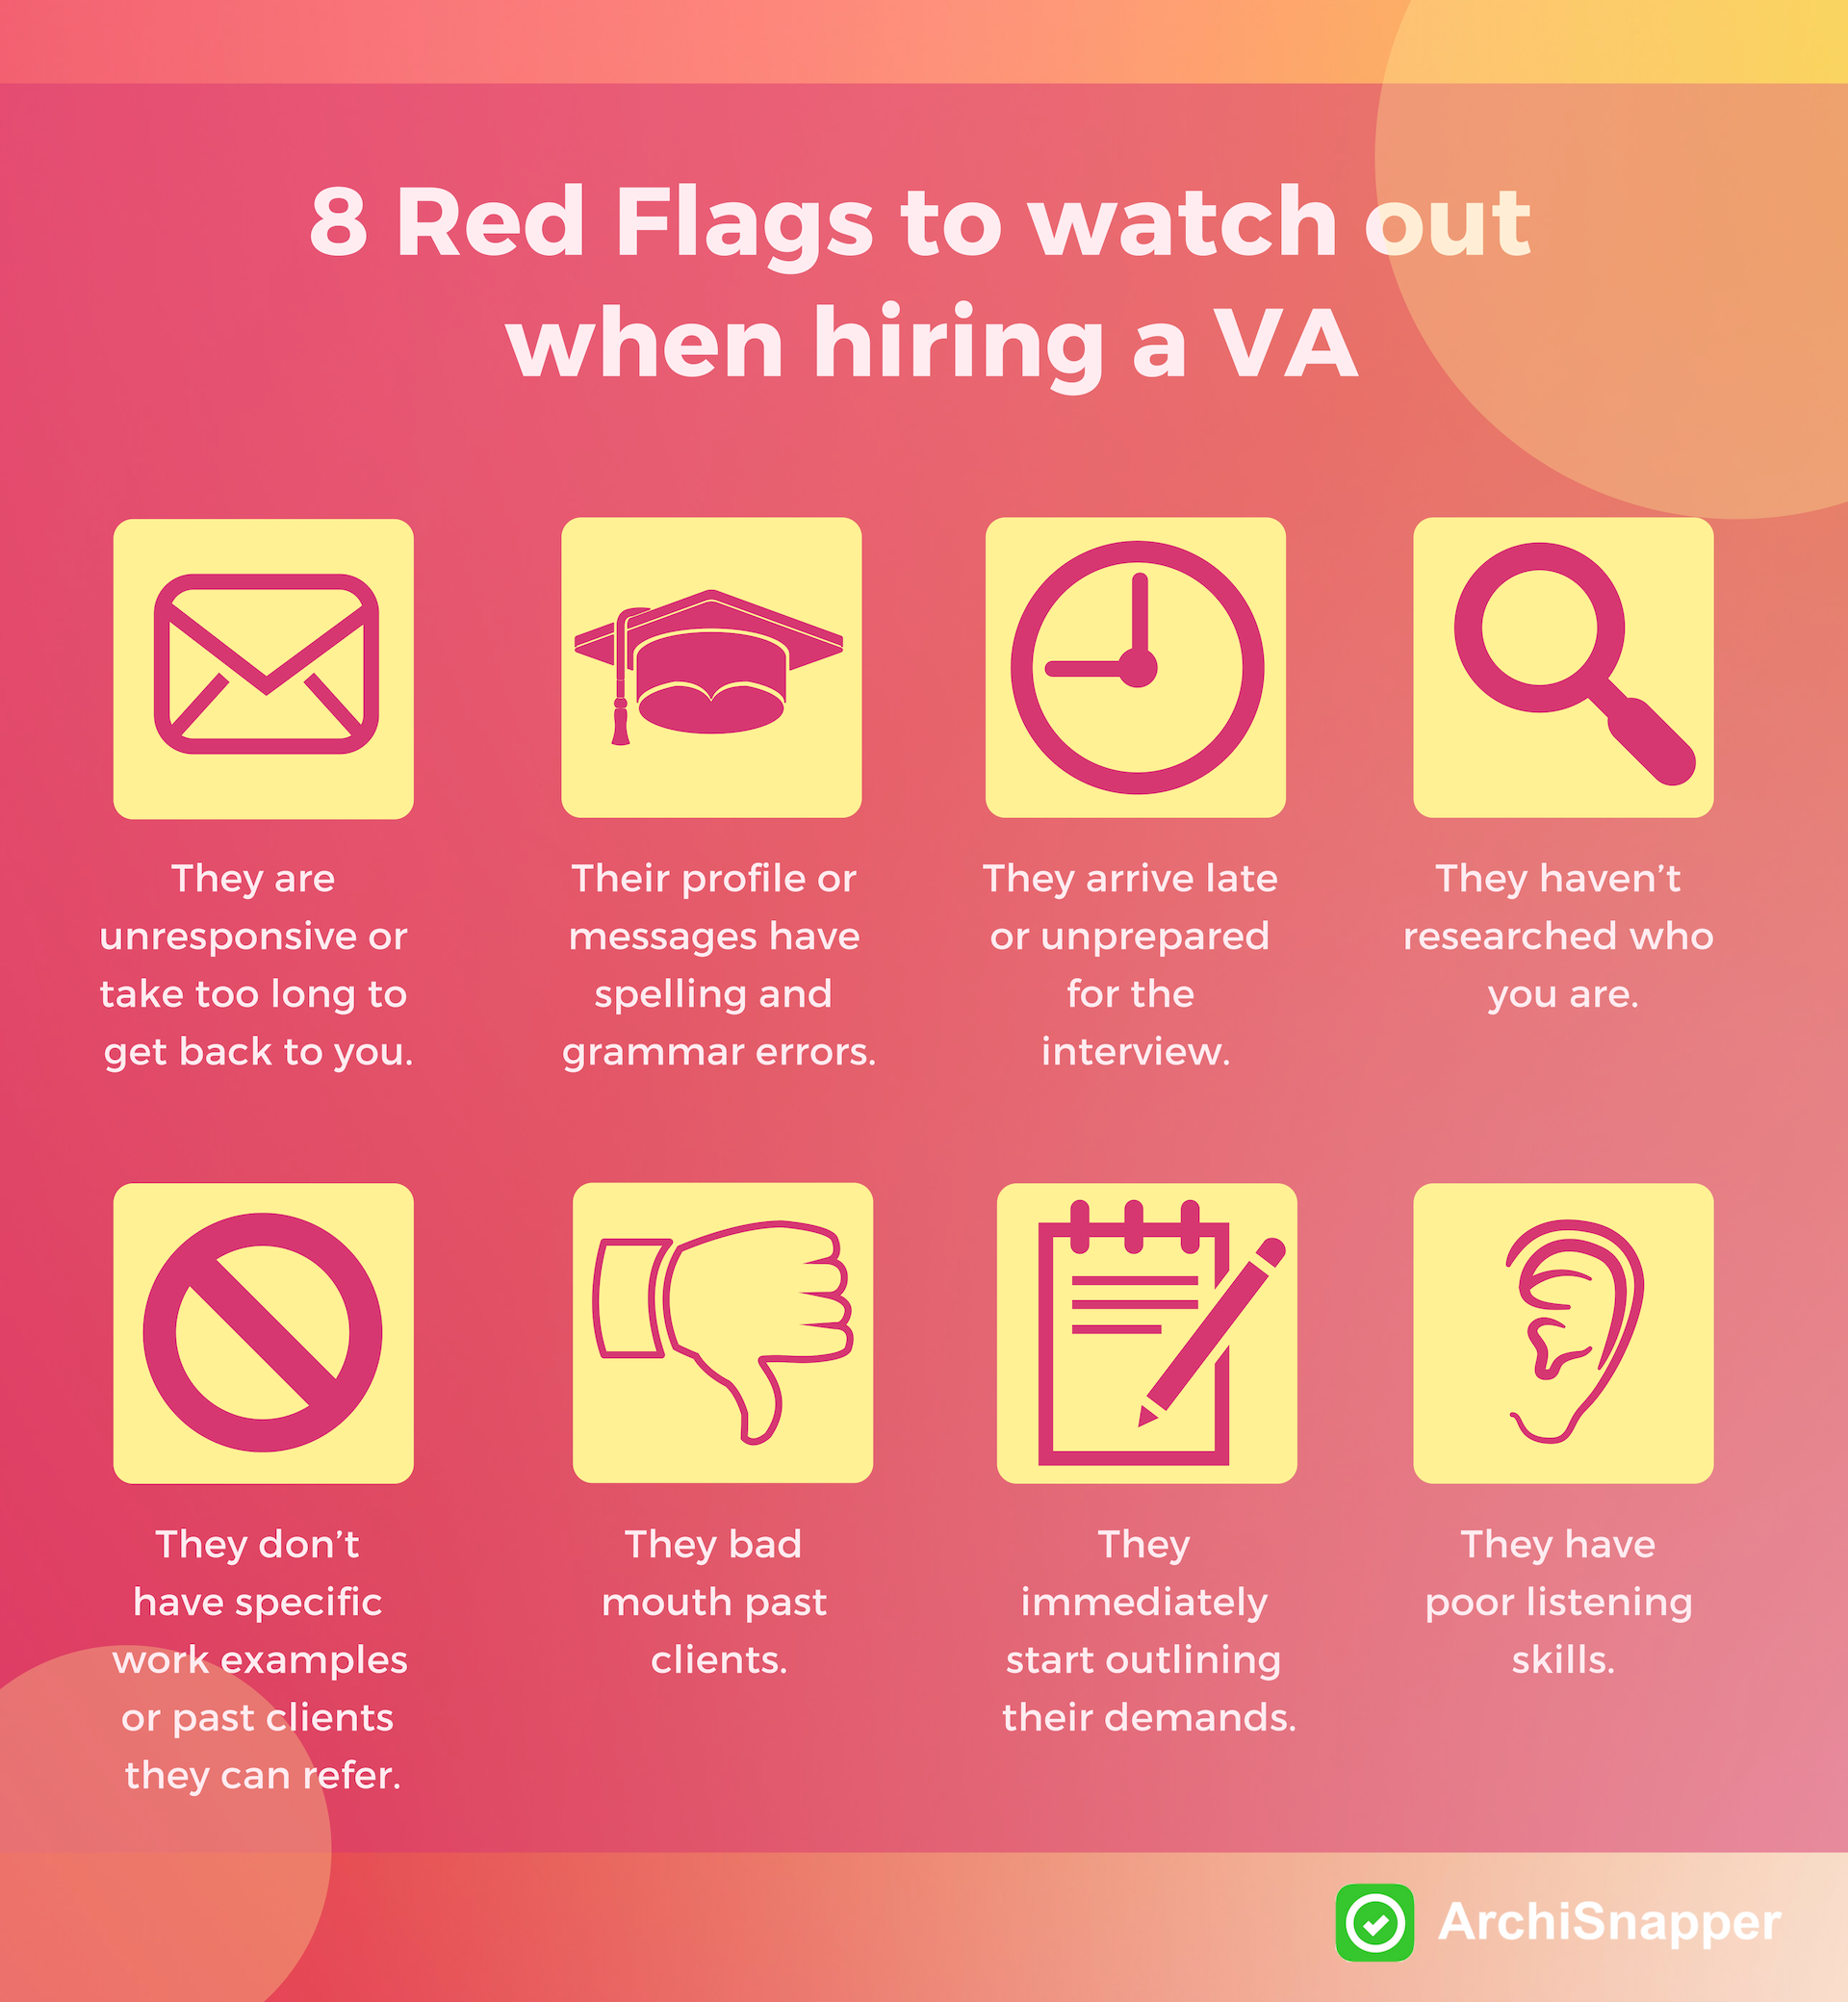 8 Red Flags to watch out when hiring a VA | Archisnapper